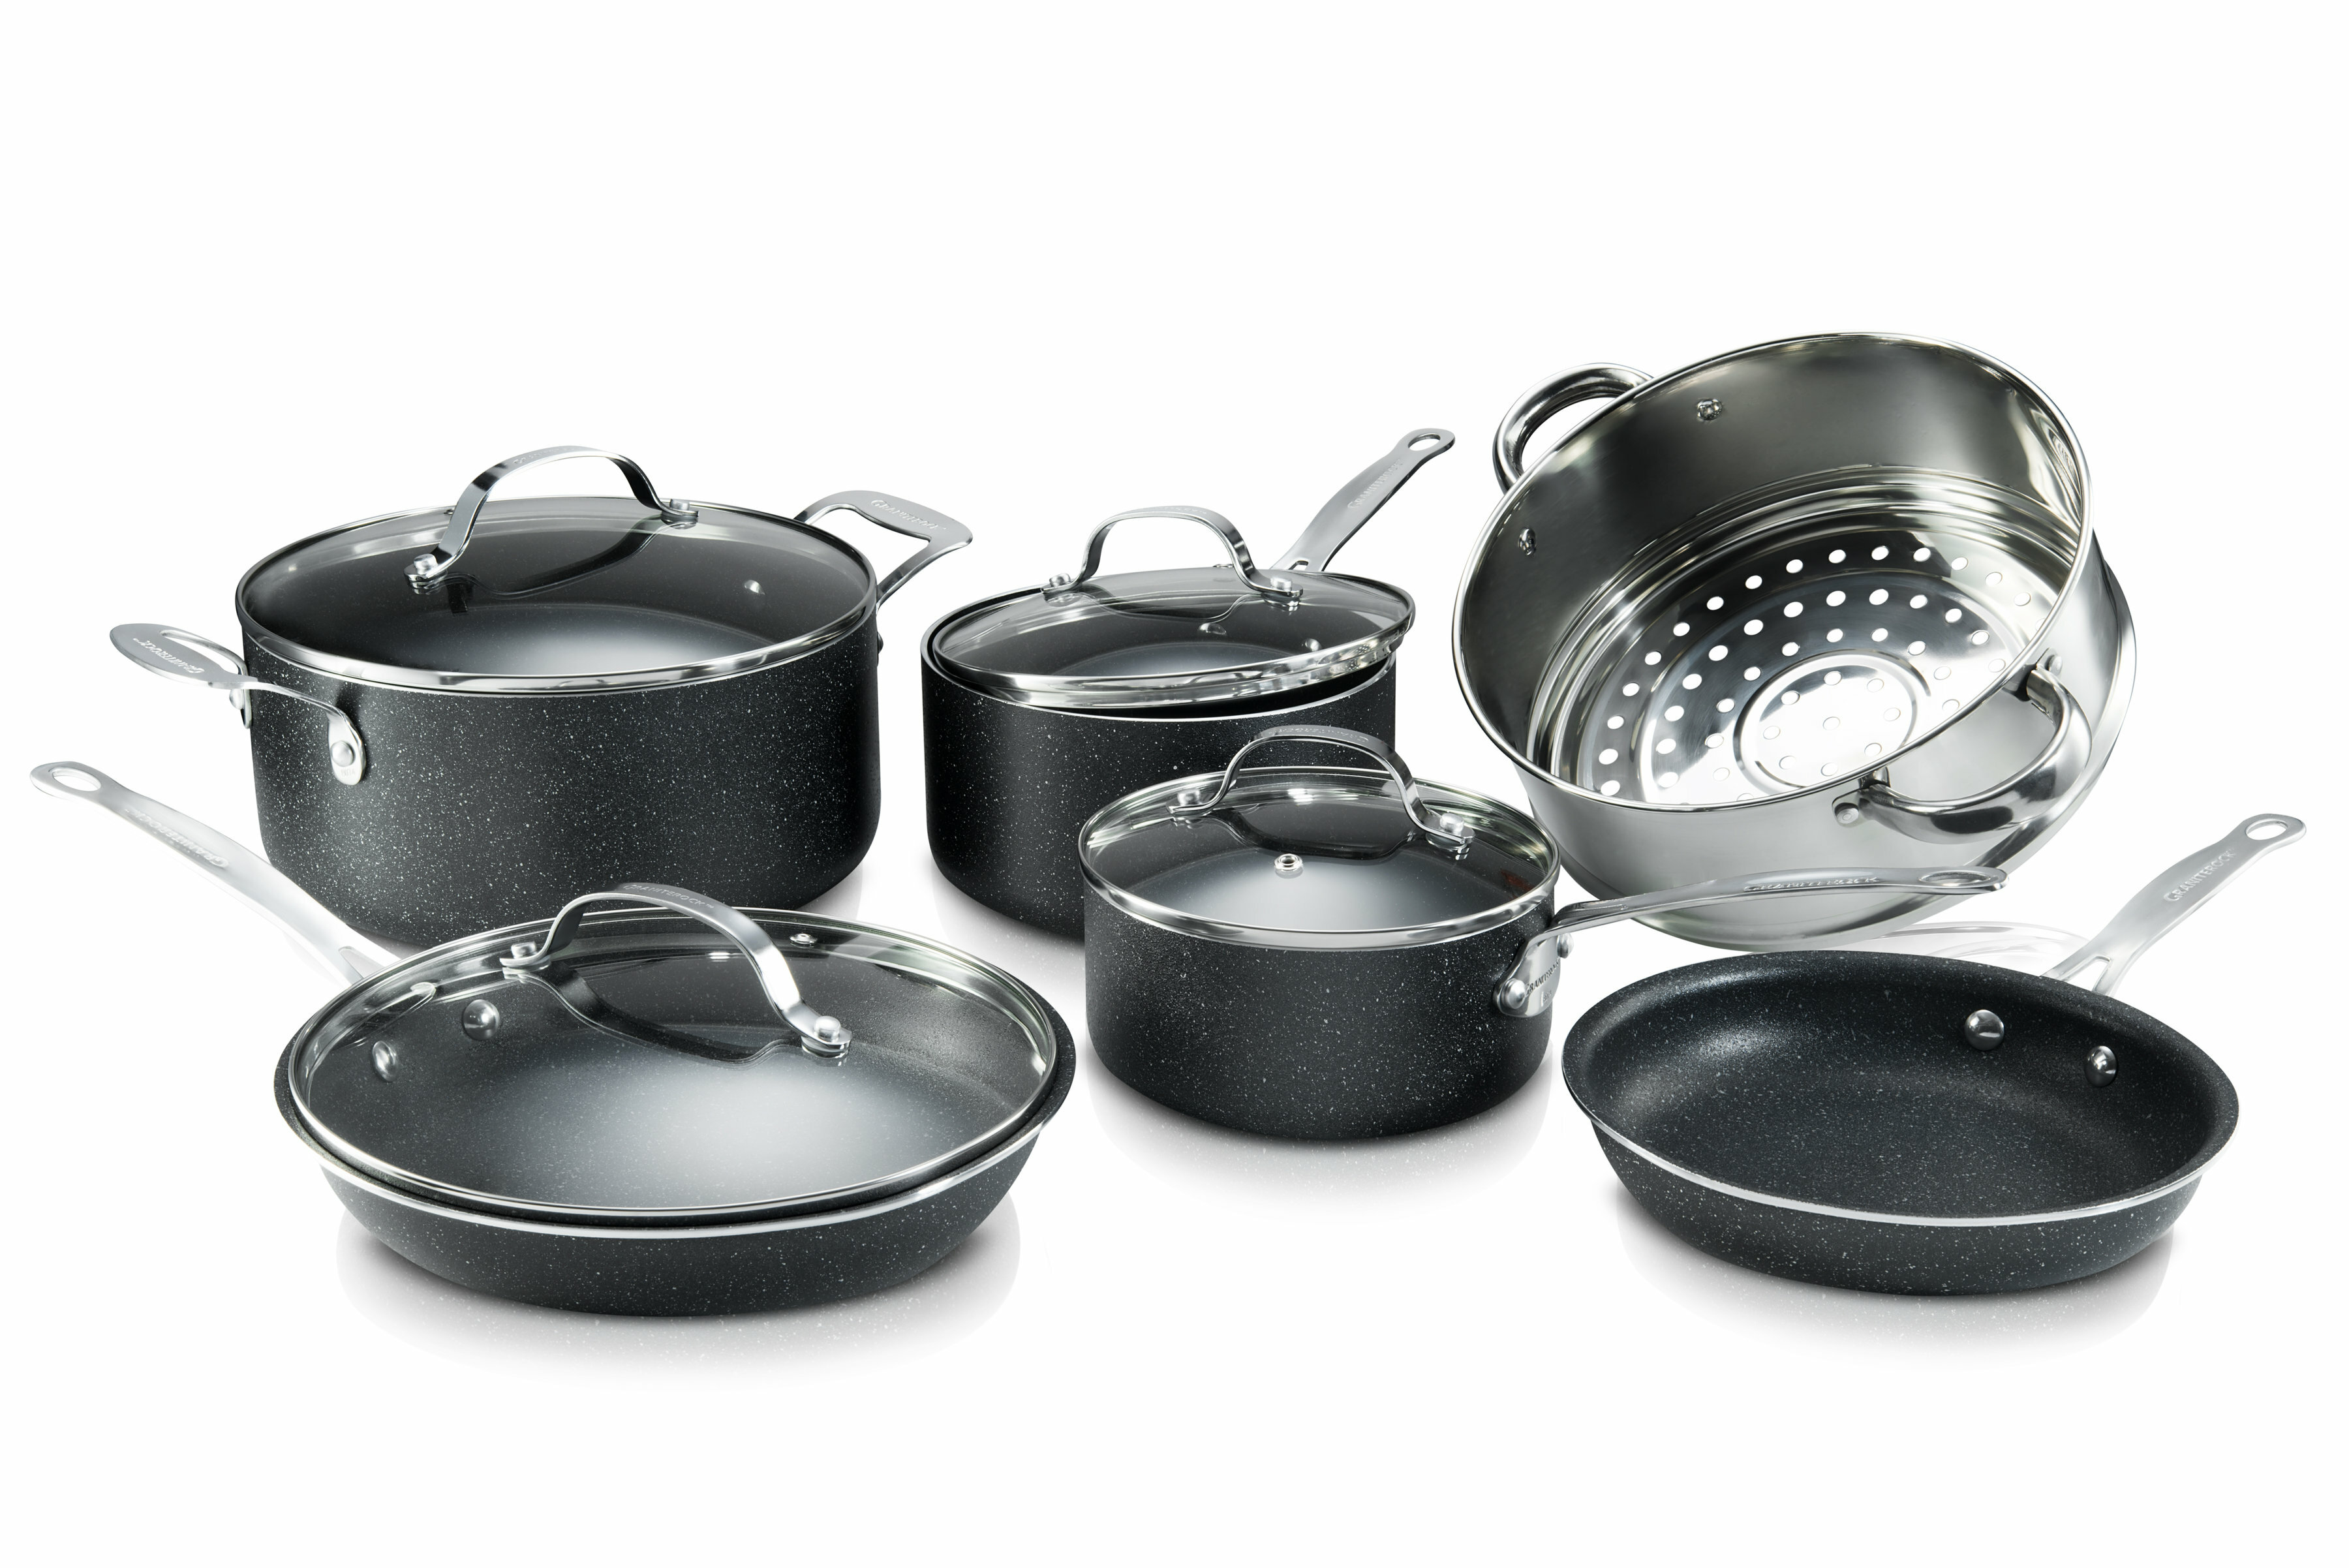 Granite Stone 10 Piece Aluminum Non Stick Triple Coating Speckled Pots And Pans Cookware Set With Mineral Diamond Infused Technology